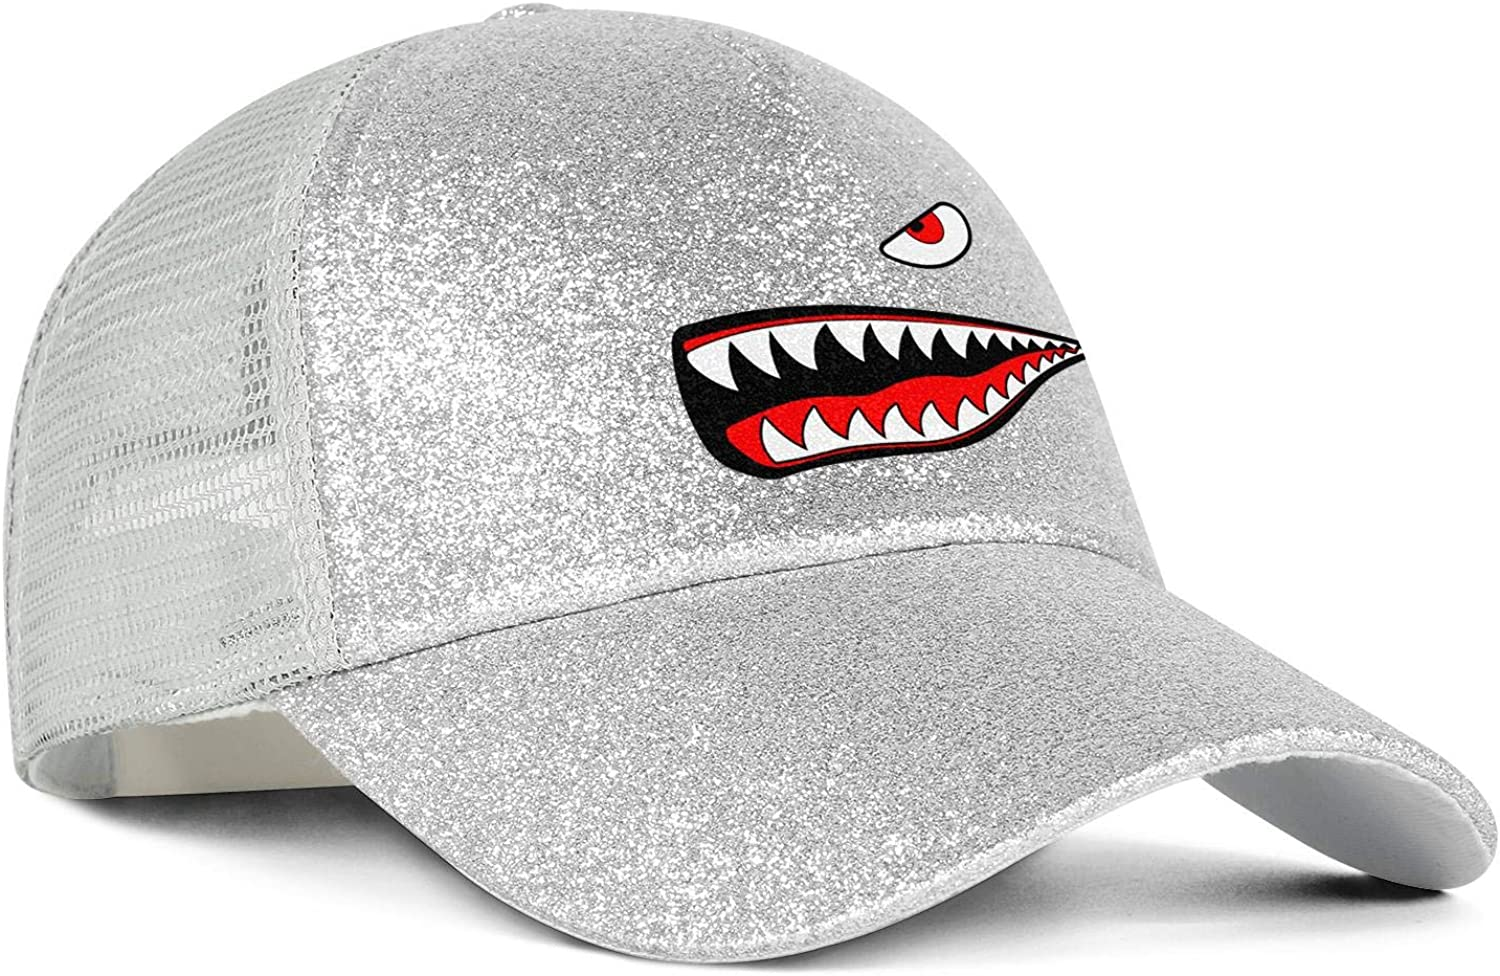 3D Shark TeethWomensMeshTruckerPonytail Messy Cap Adjustable SnapbackSports Hat